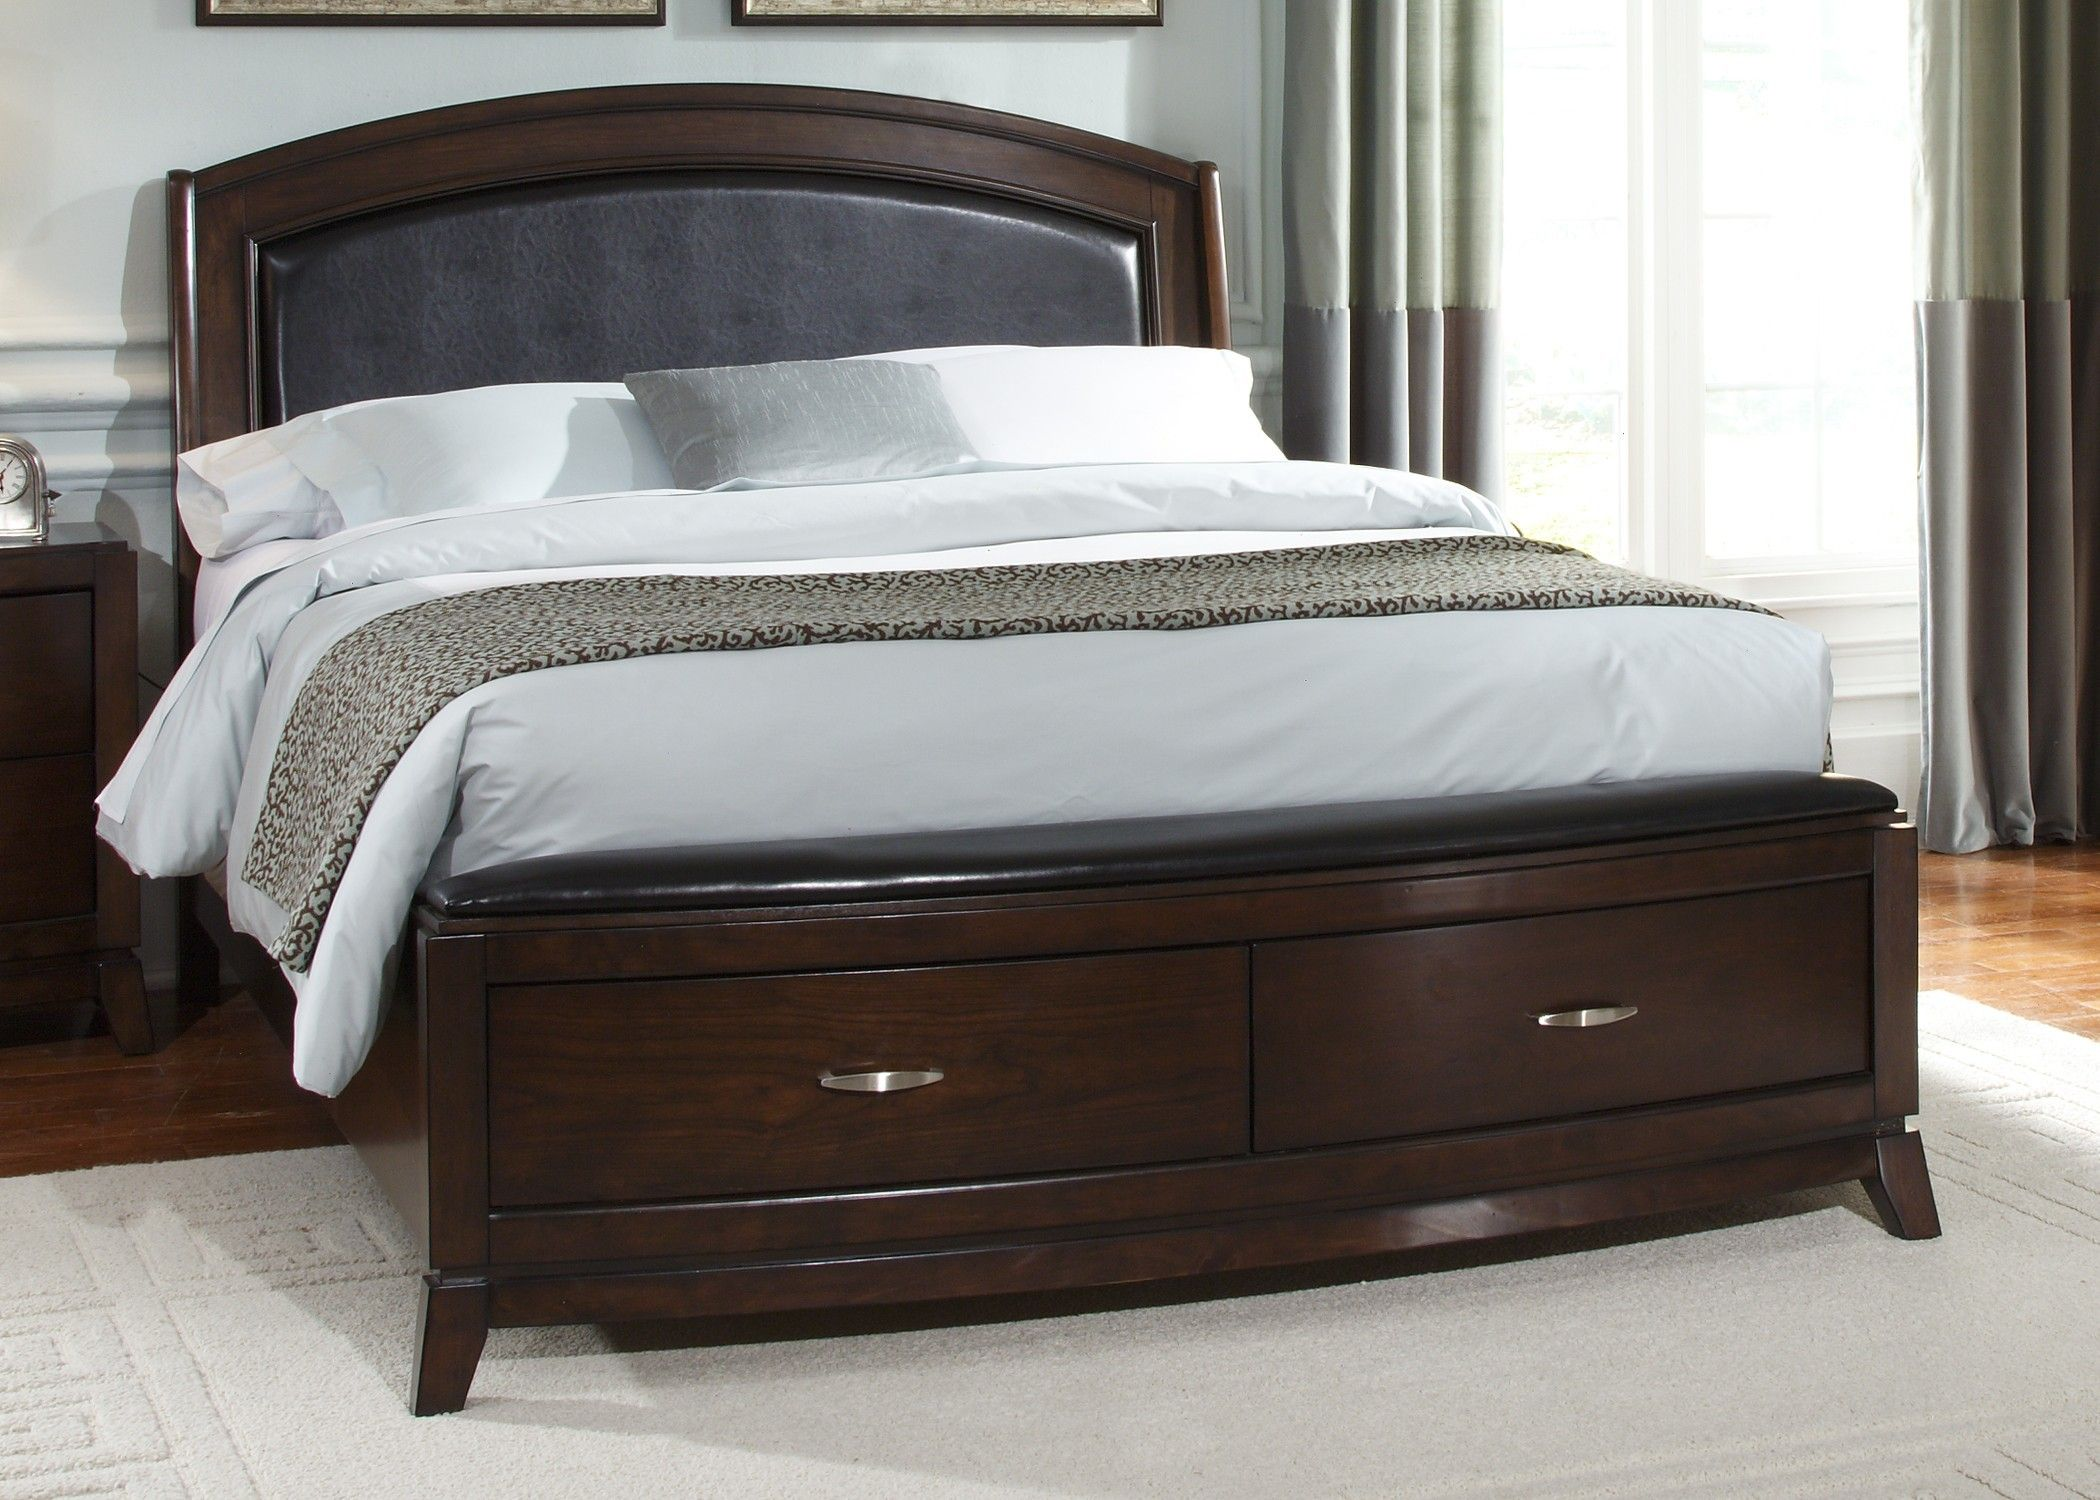 Elegant Dark Wood Bed Frame For Main Bedroom Furniture Is